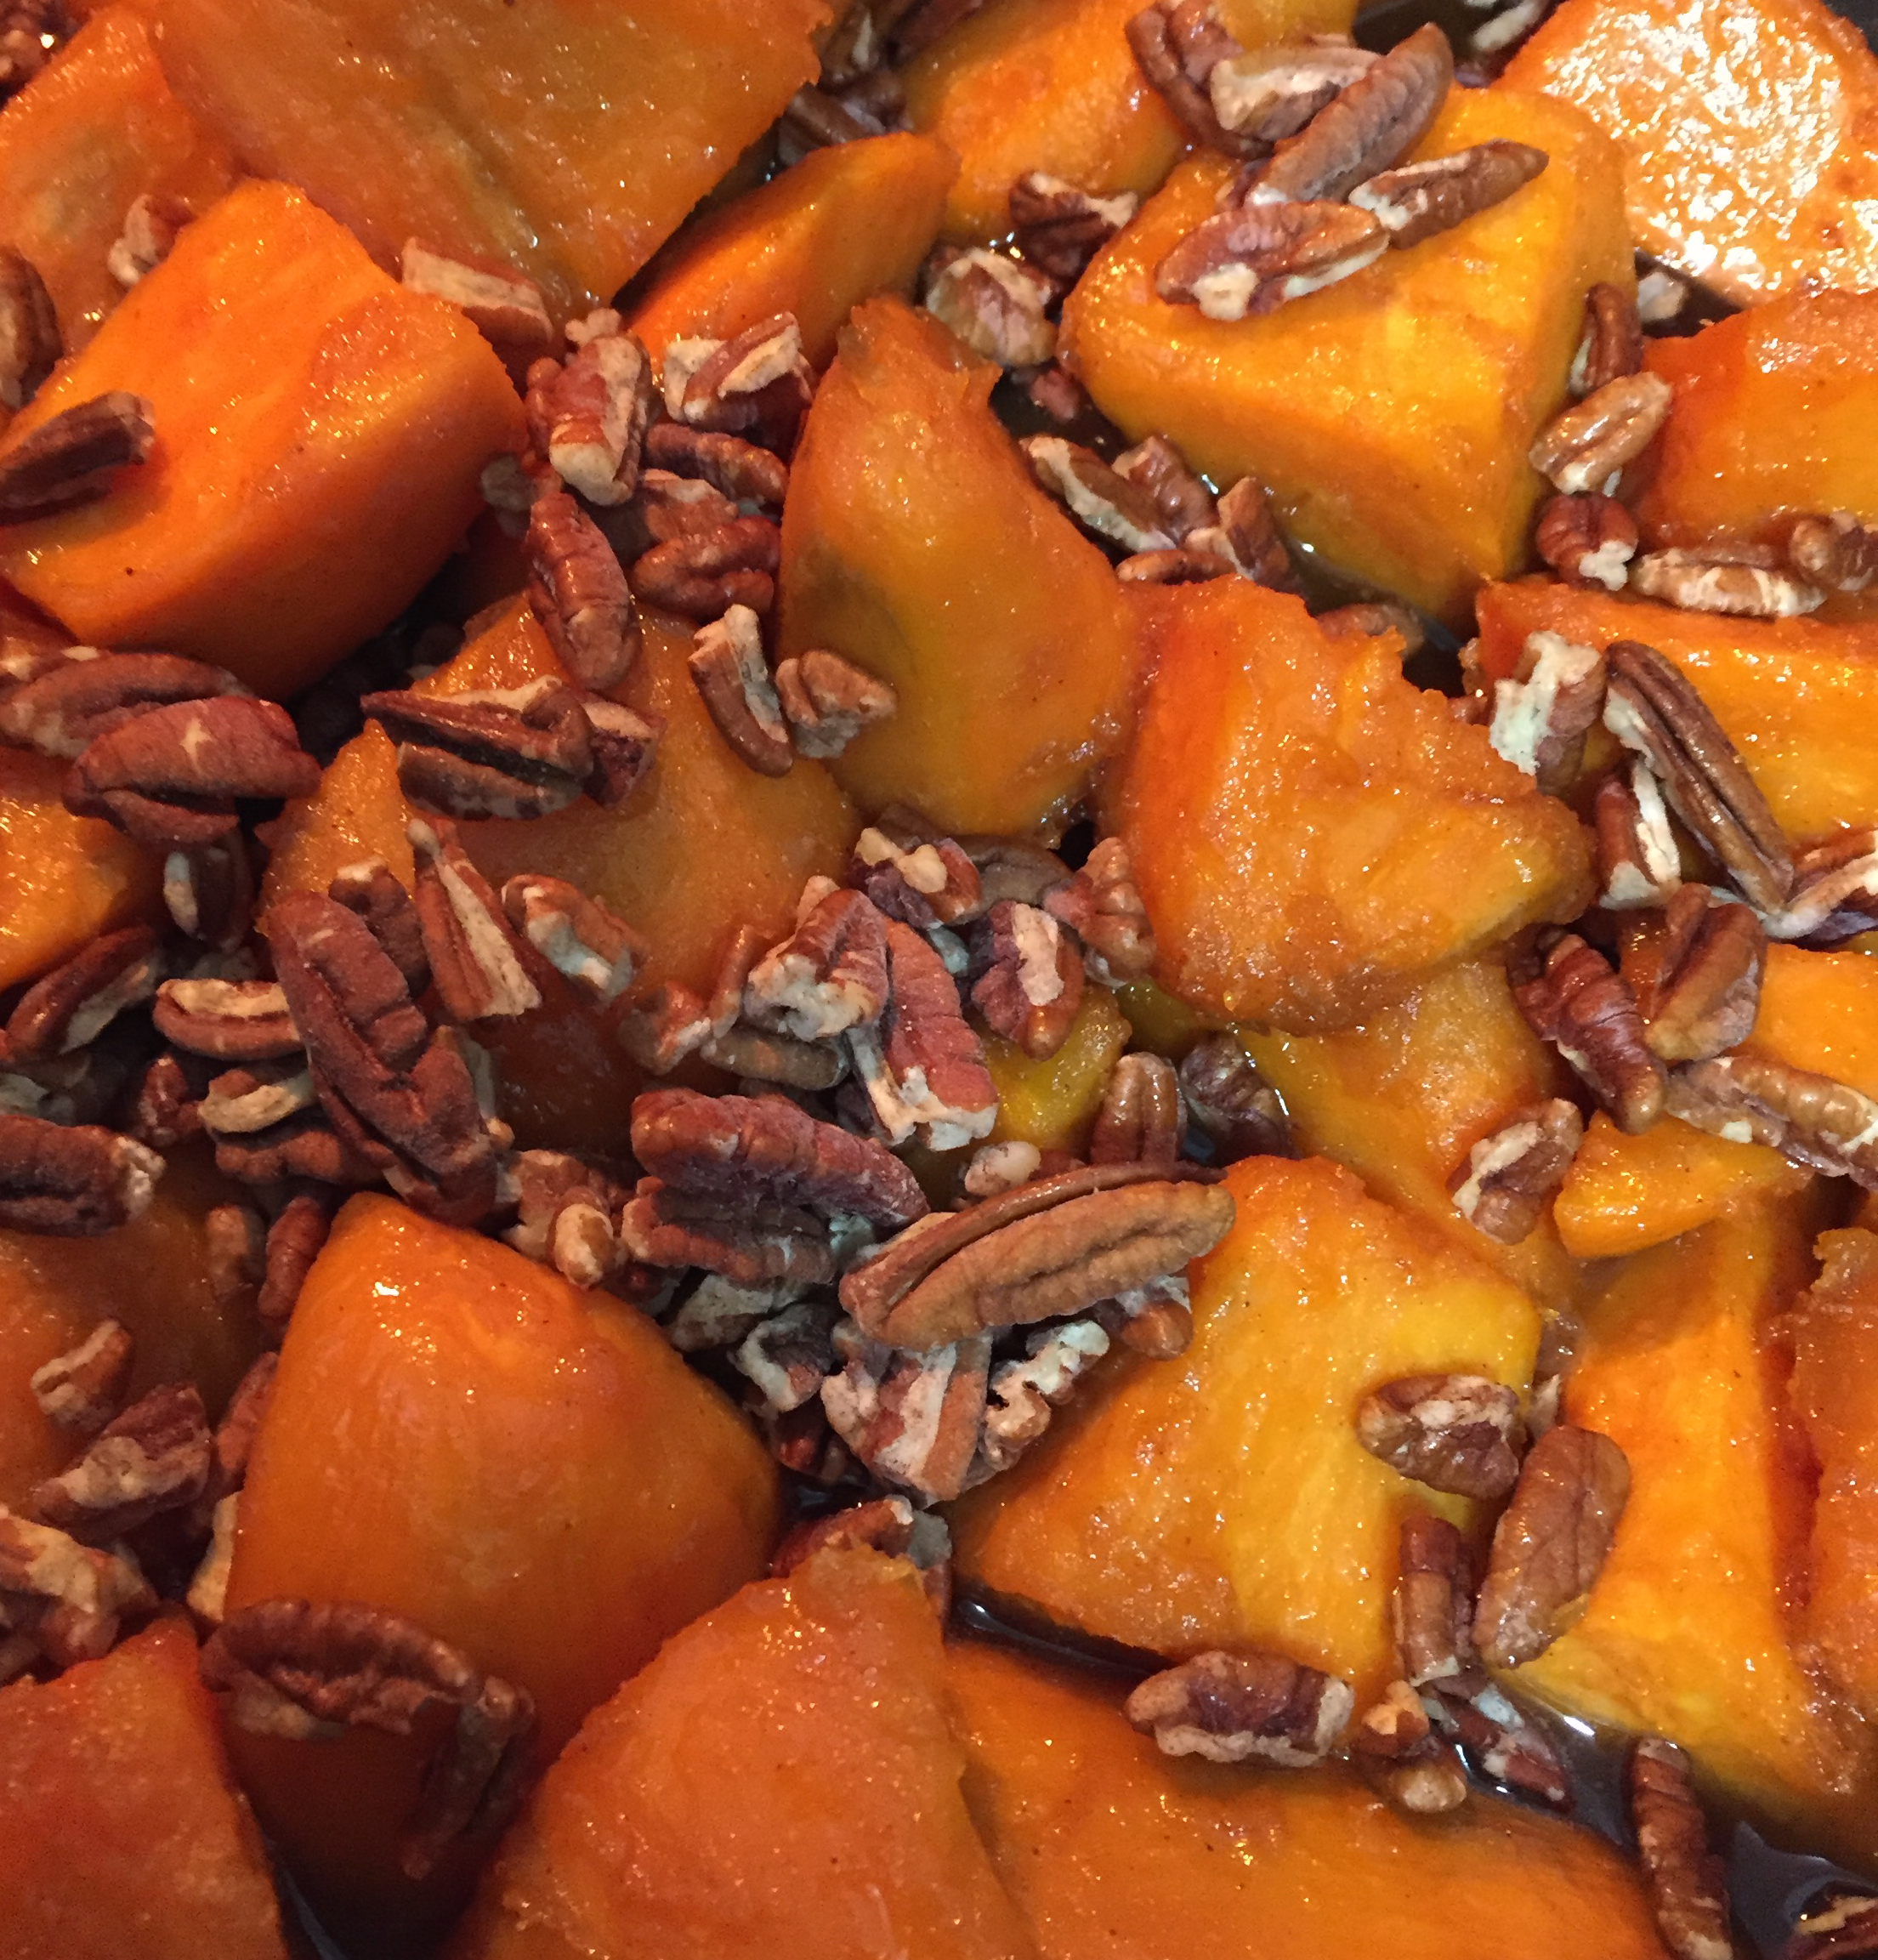 Chef John's Candied Yams LovesToCook